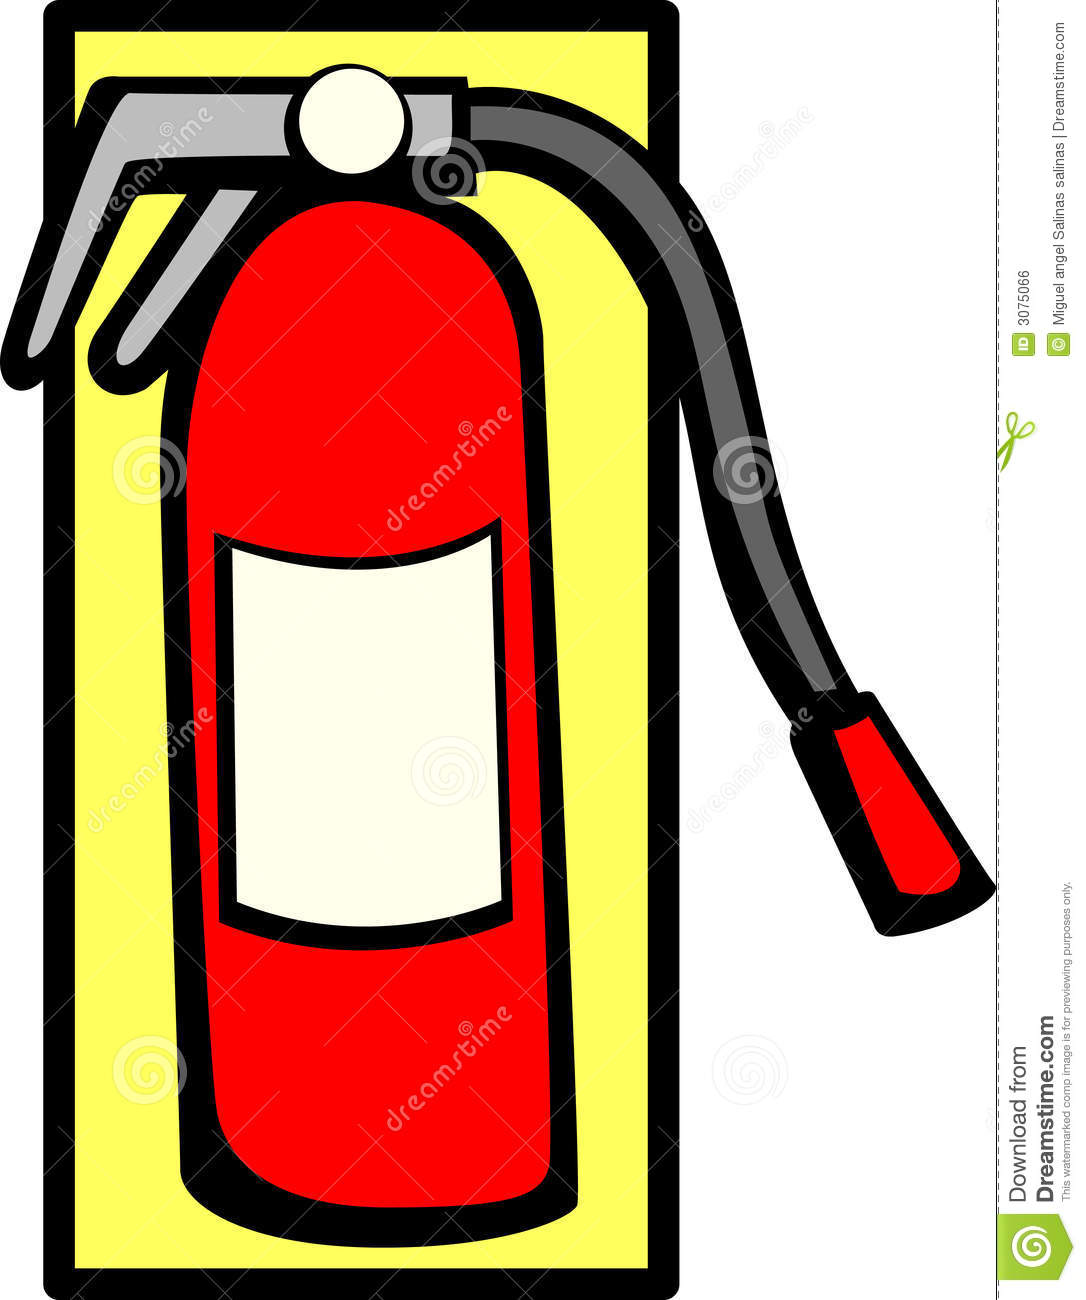 Fire extinguishing clipart - Clipground